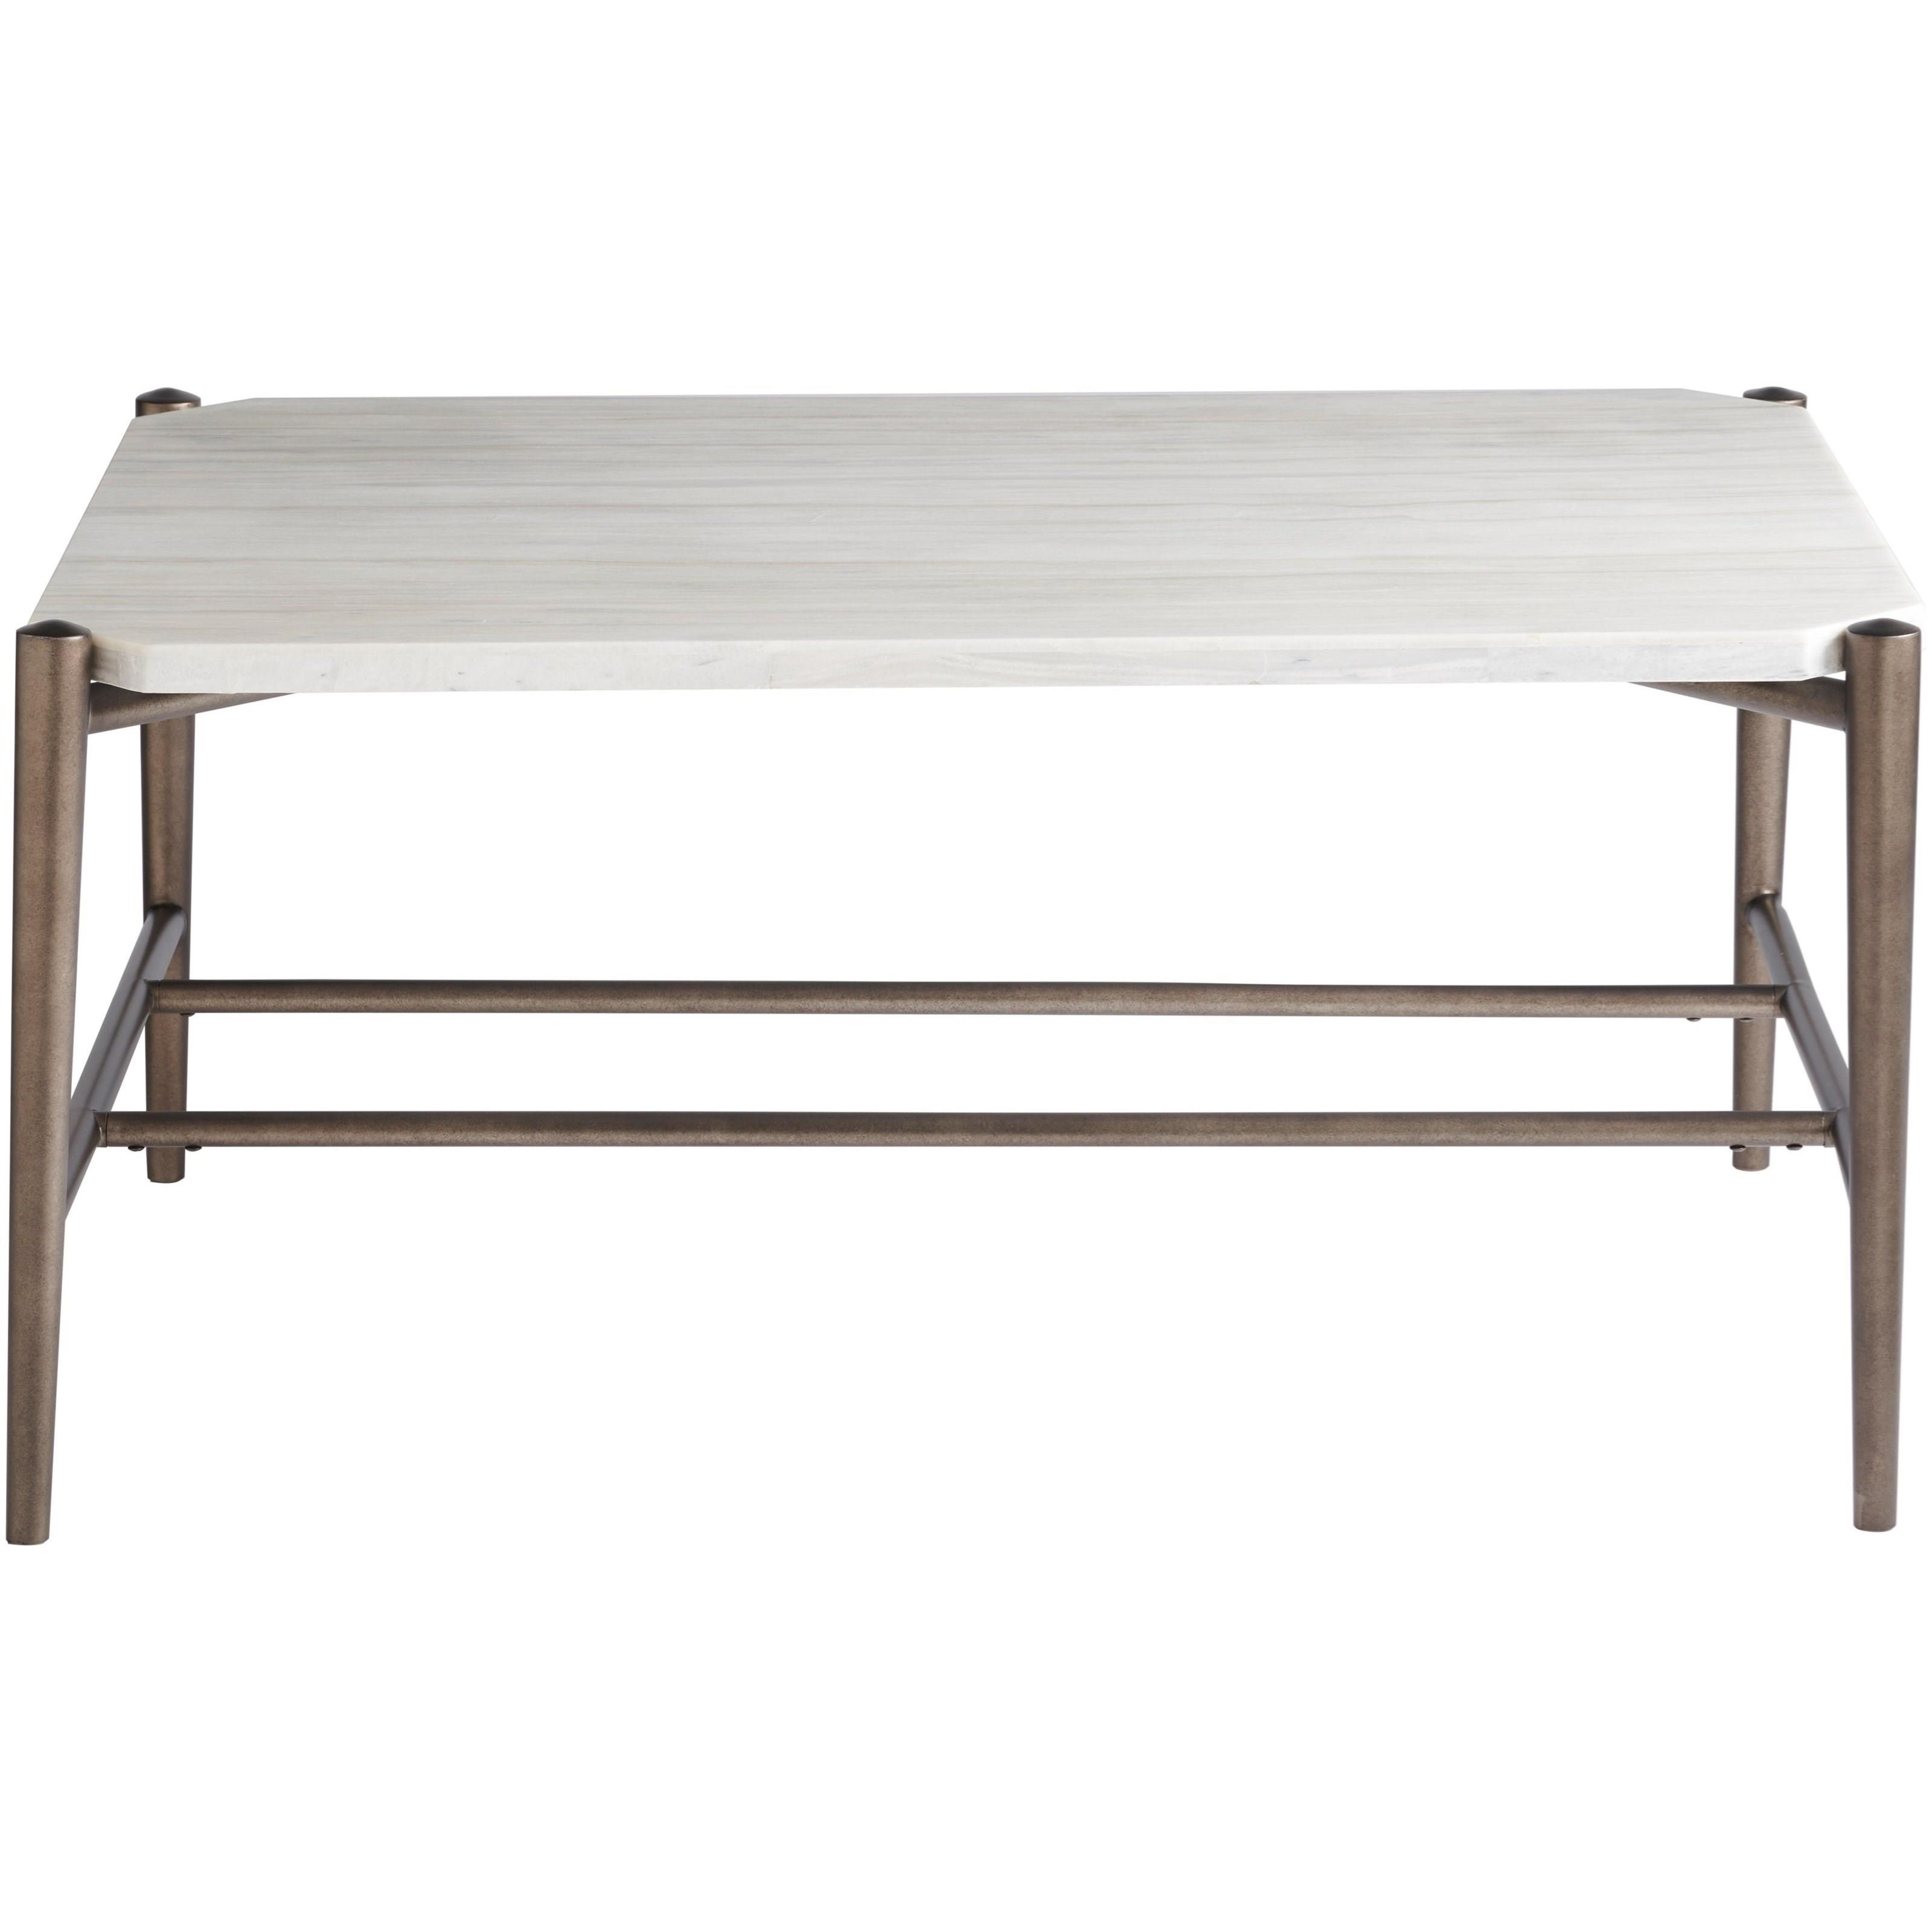 Curated Oslo Cocktail Table by Universal at Baer's Furniture